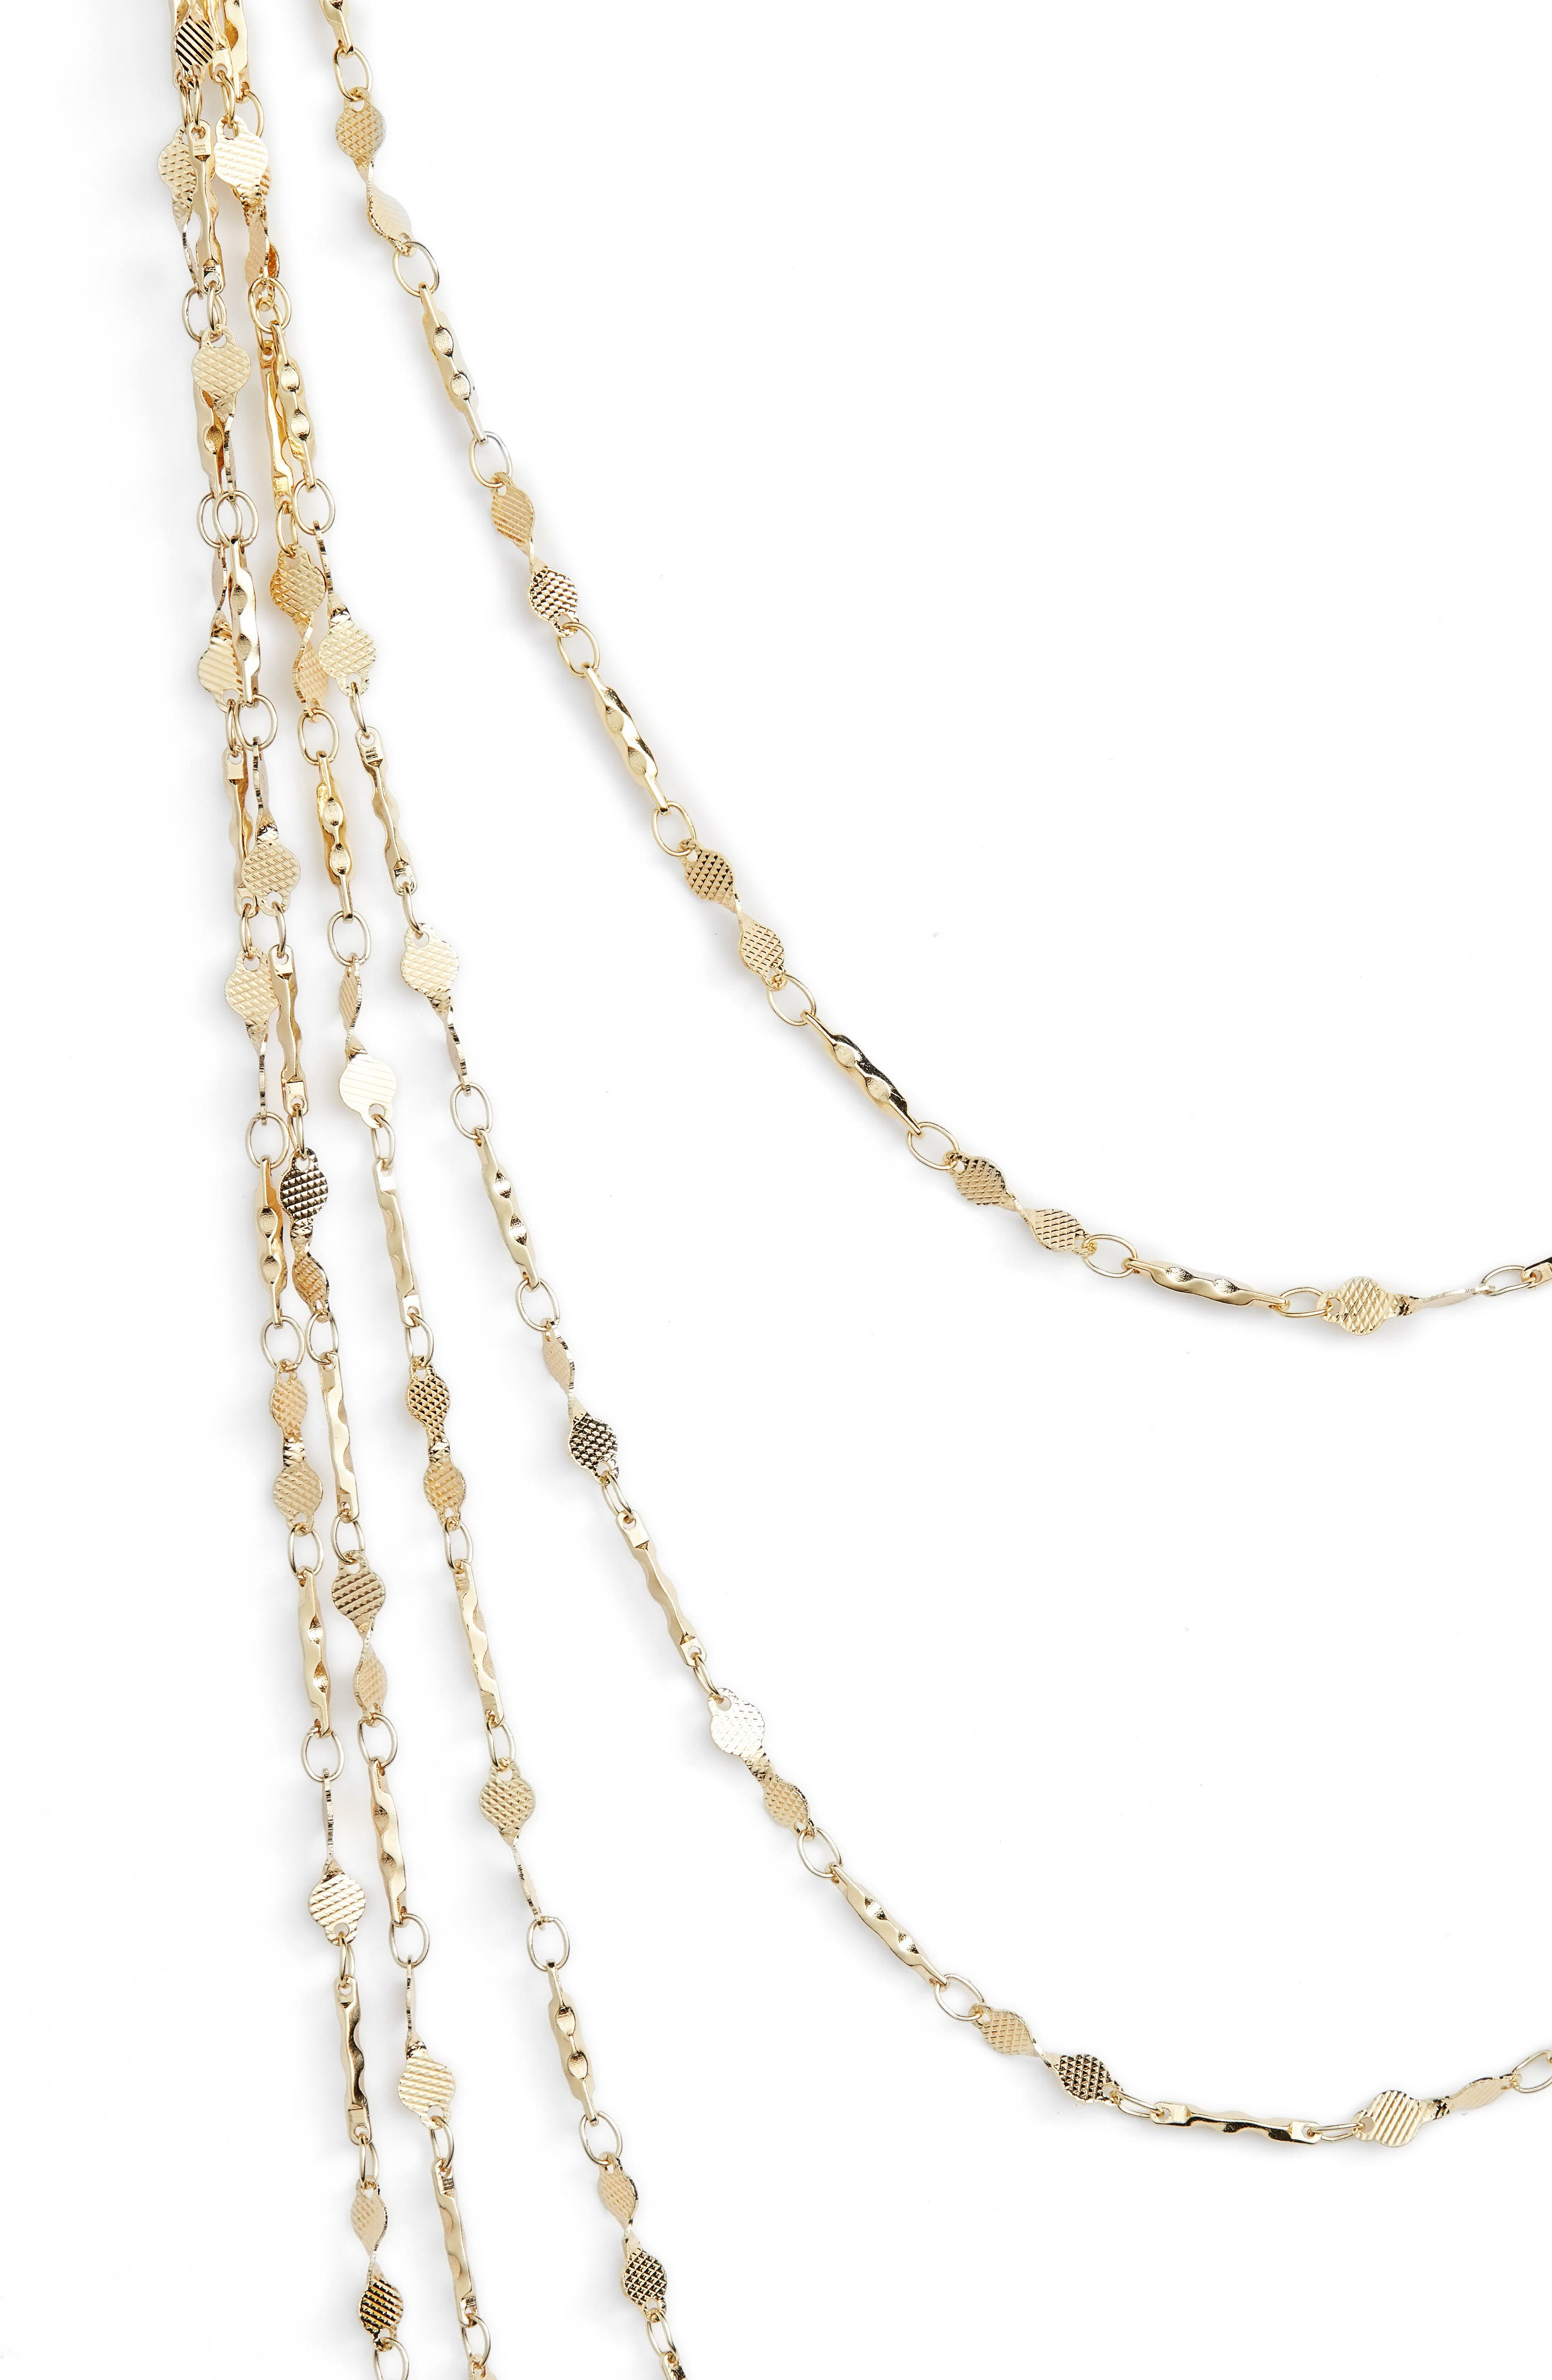 5-Strand Necklace,                             Alternate thumbnail 2, color,                             GOLD